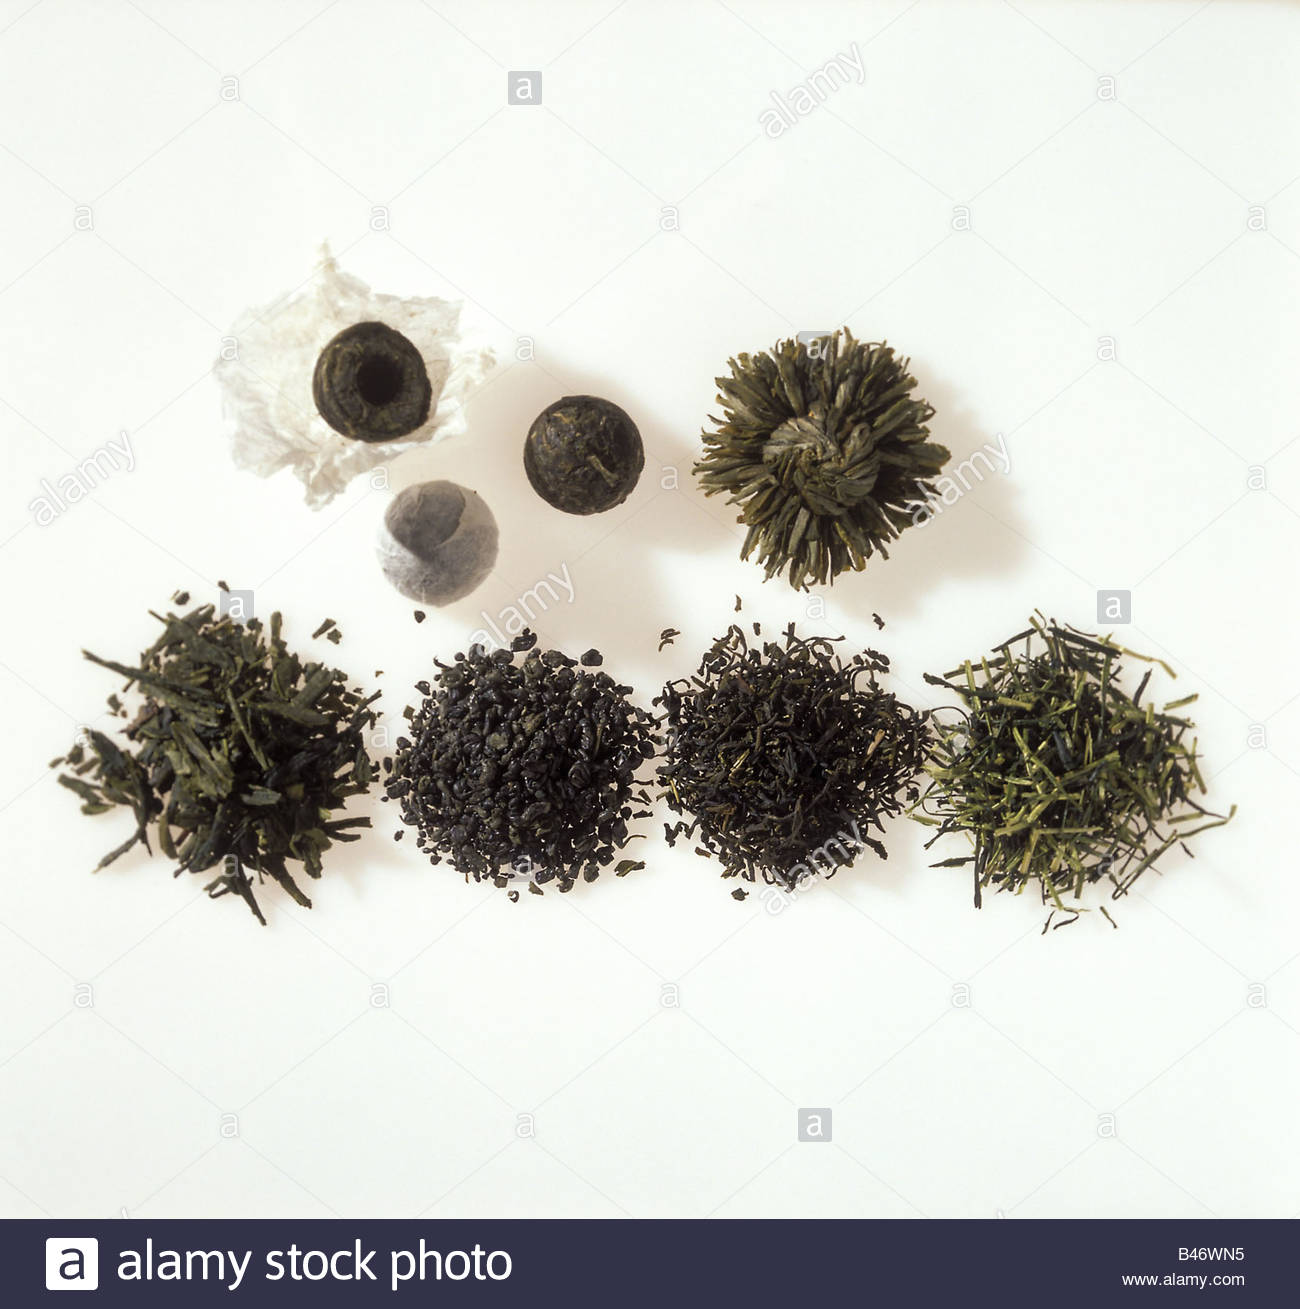 Green Tea Various Types Of Tea Leaves Stock Photo 19820897 Alamy